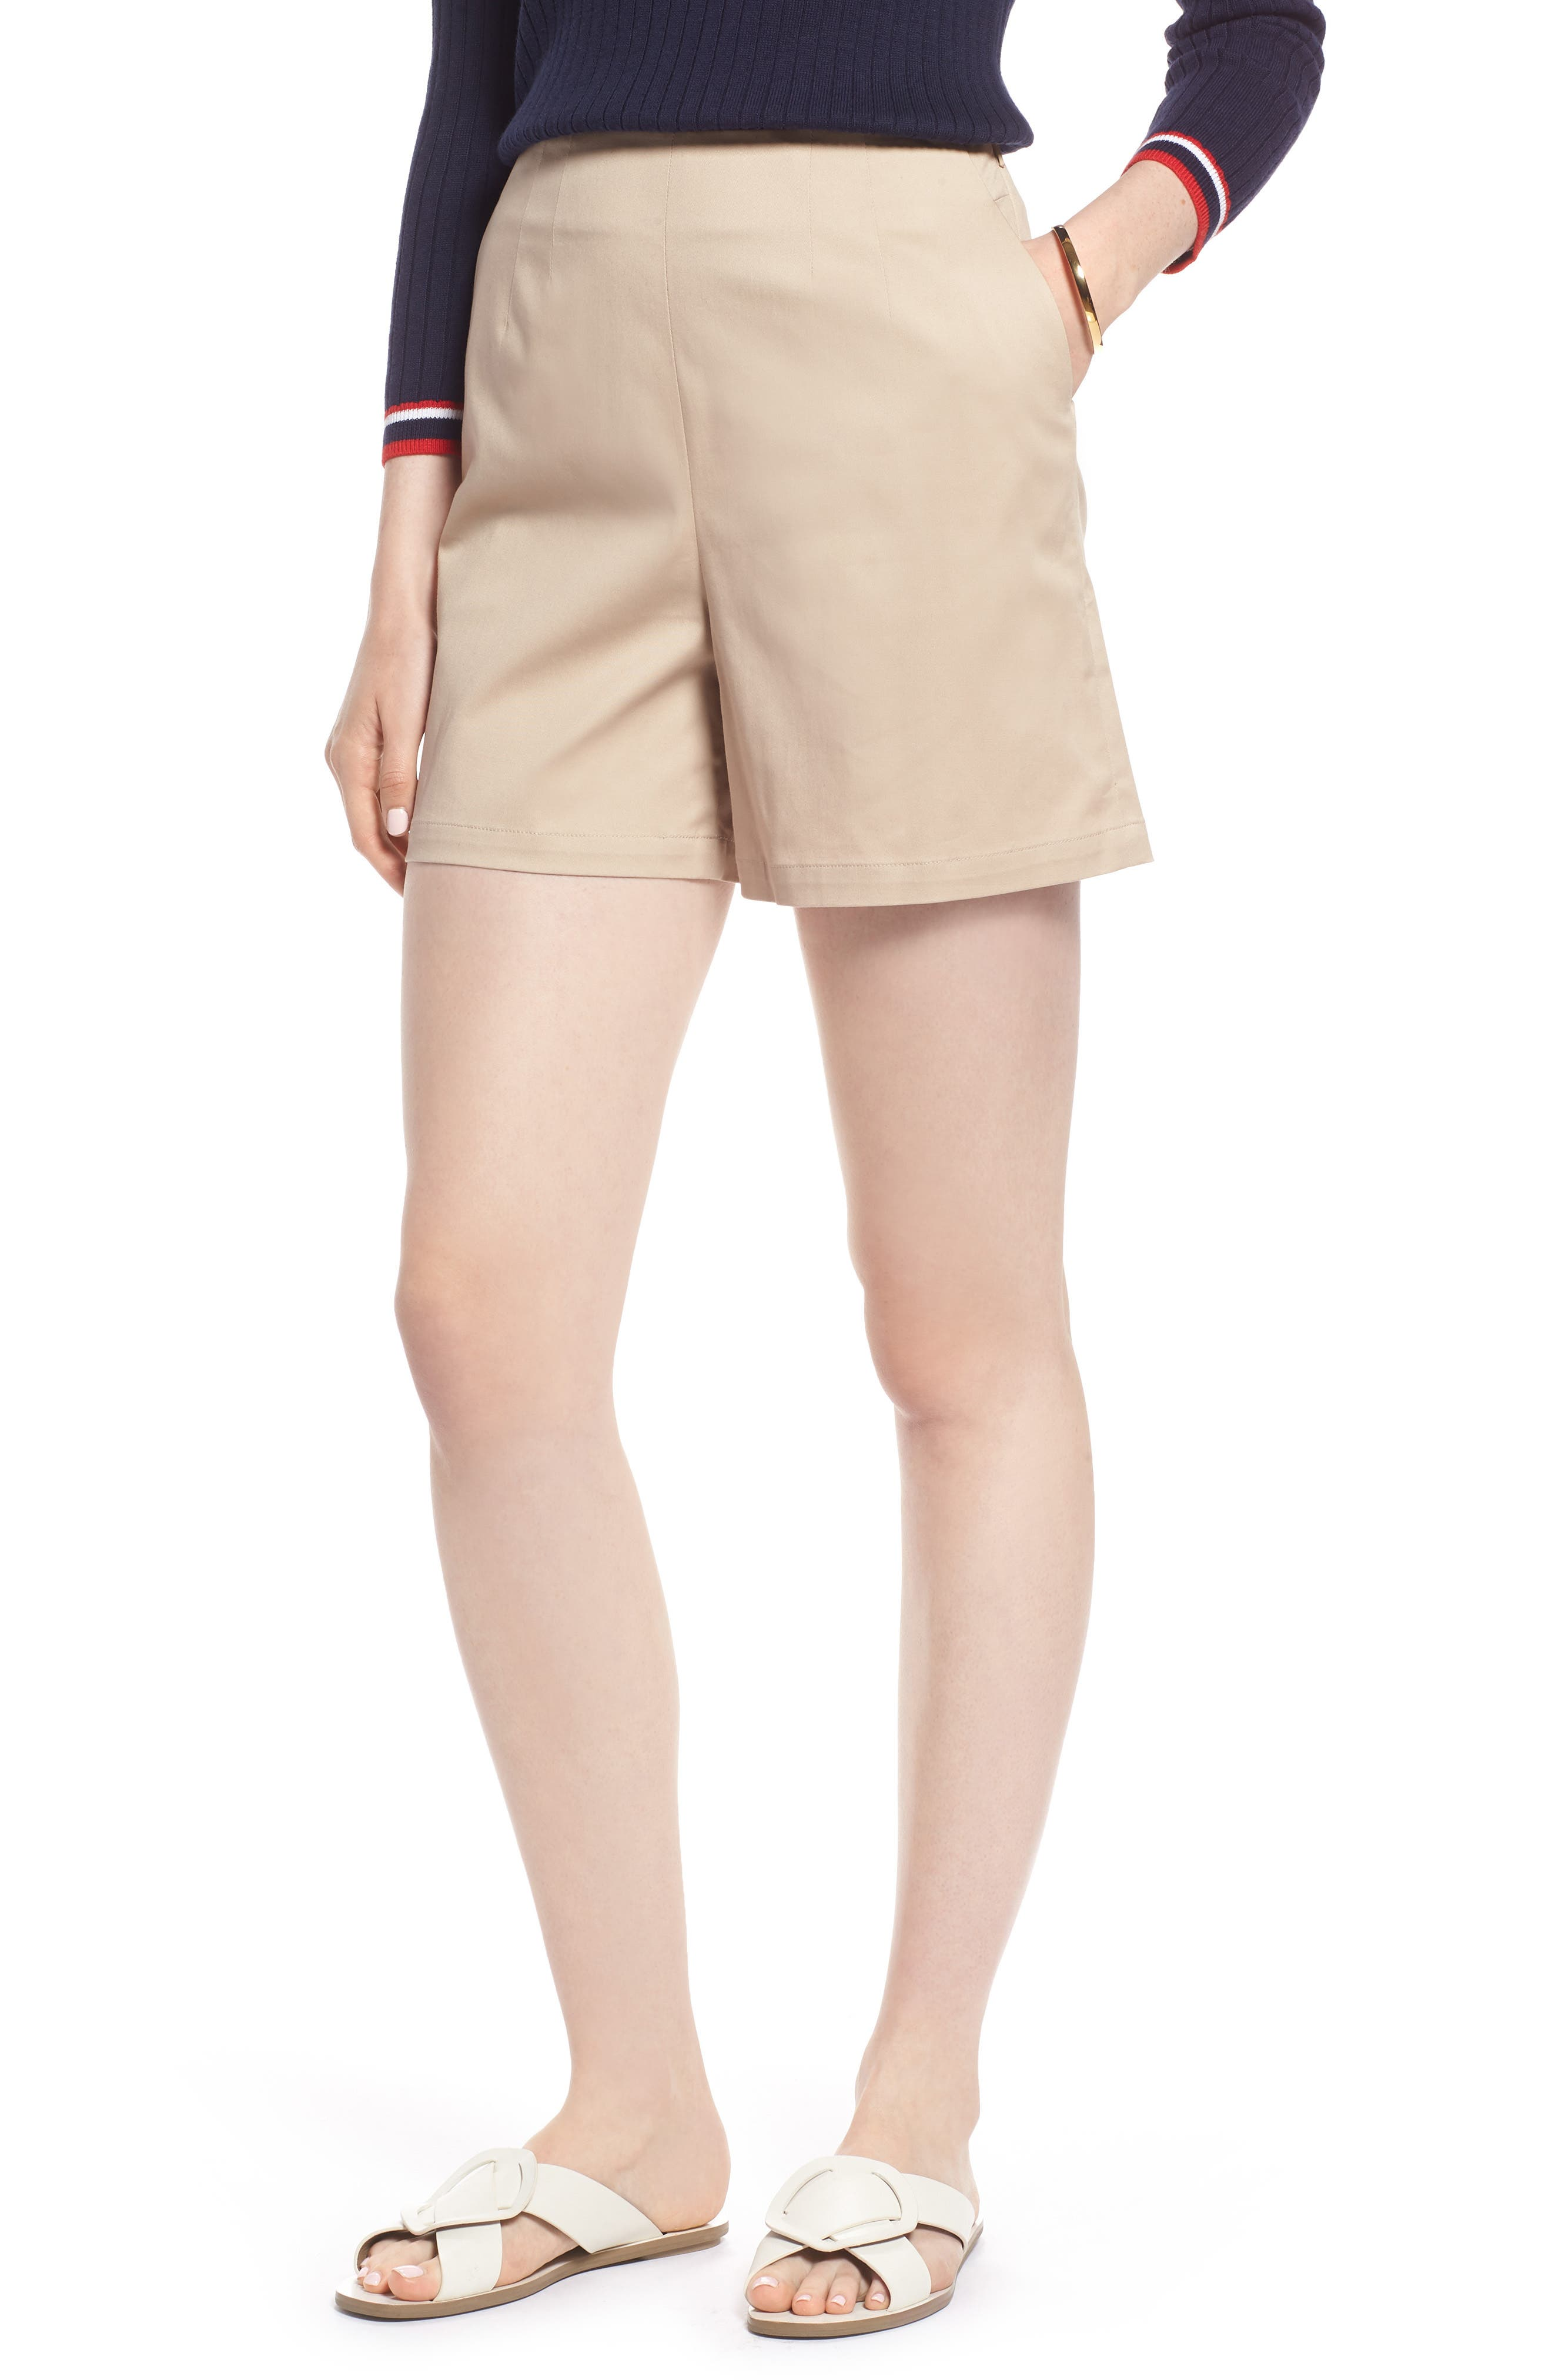 Clean Twill Shorts,                             Main thumbnail 1, color,                             Tan